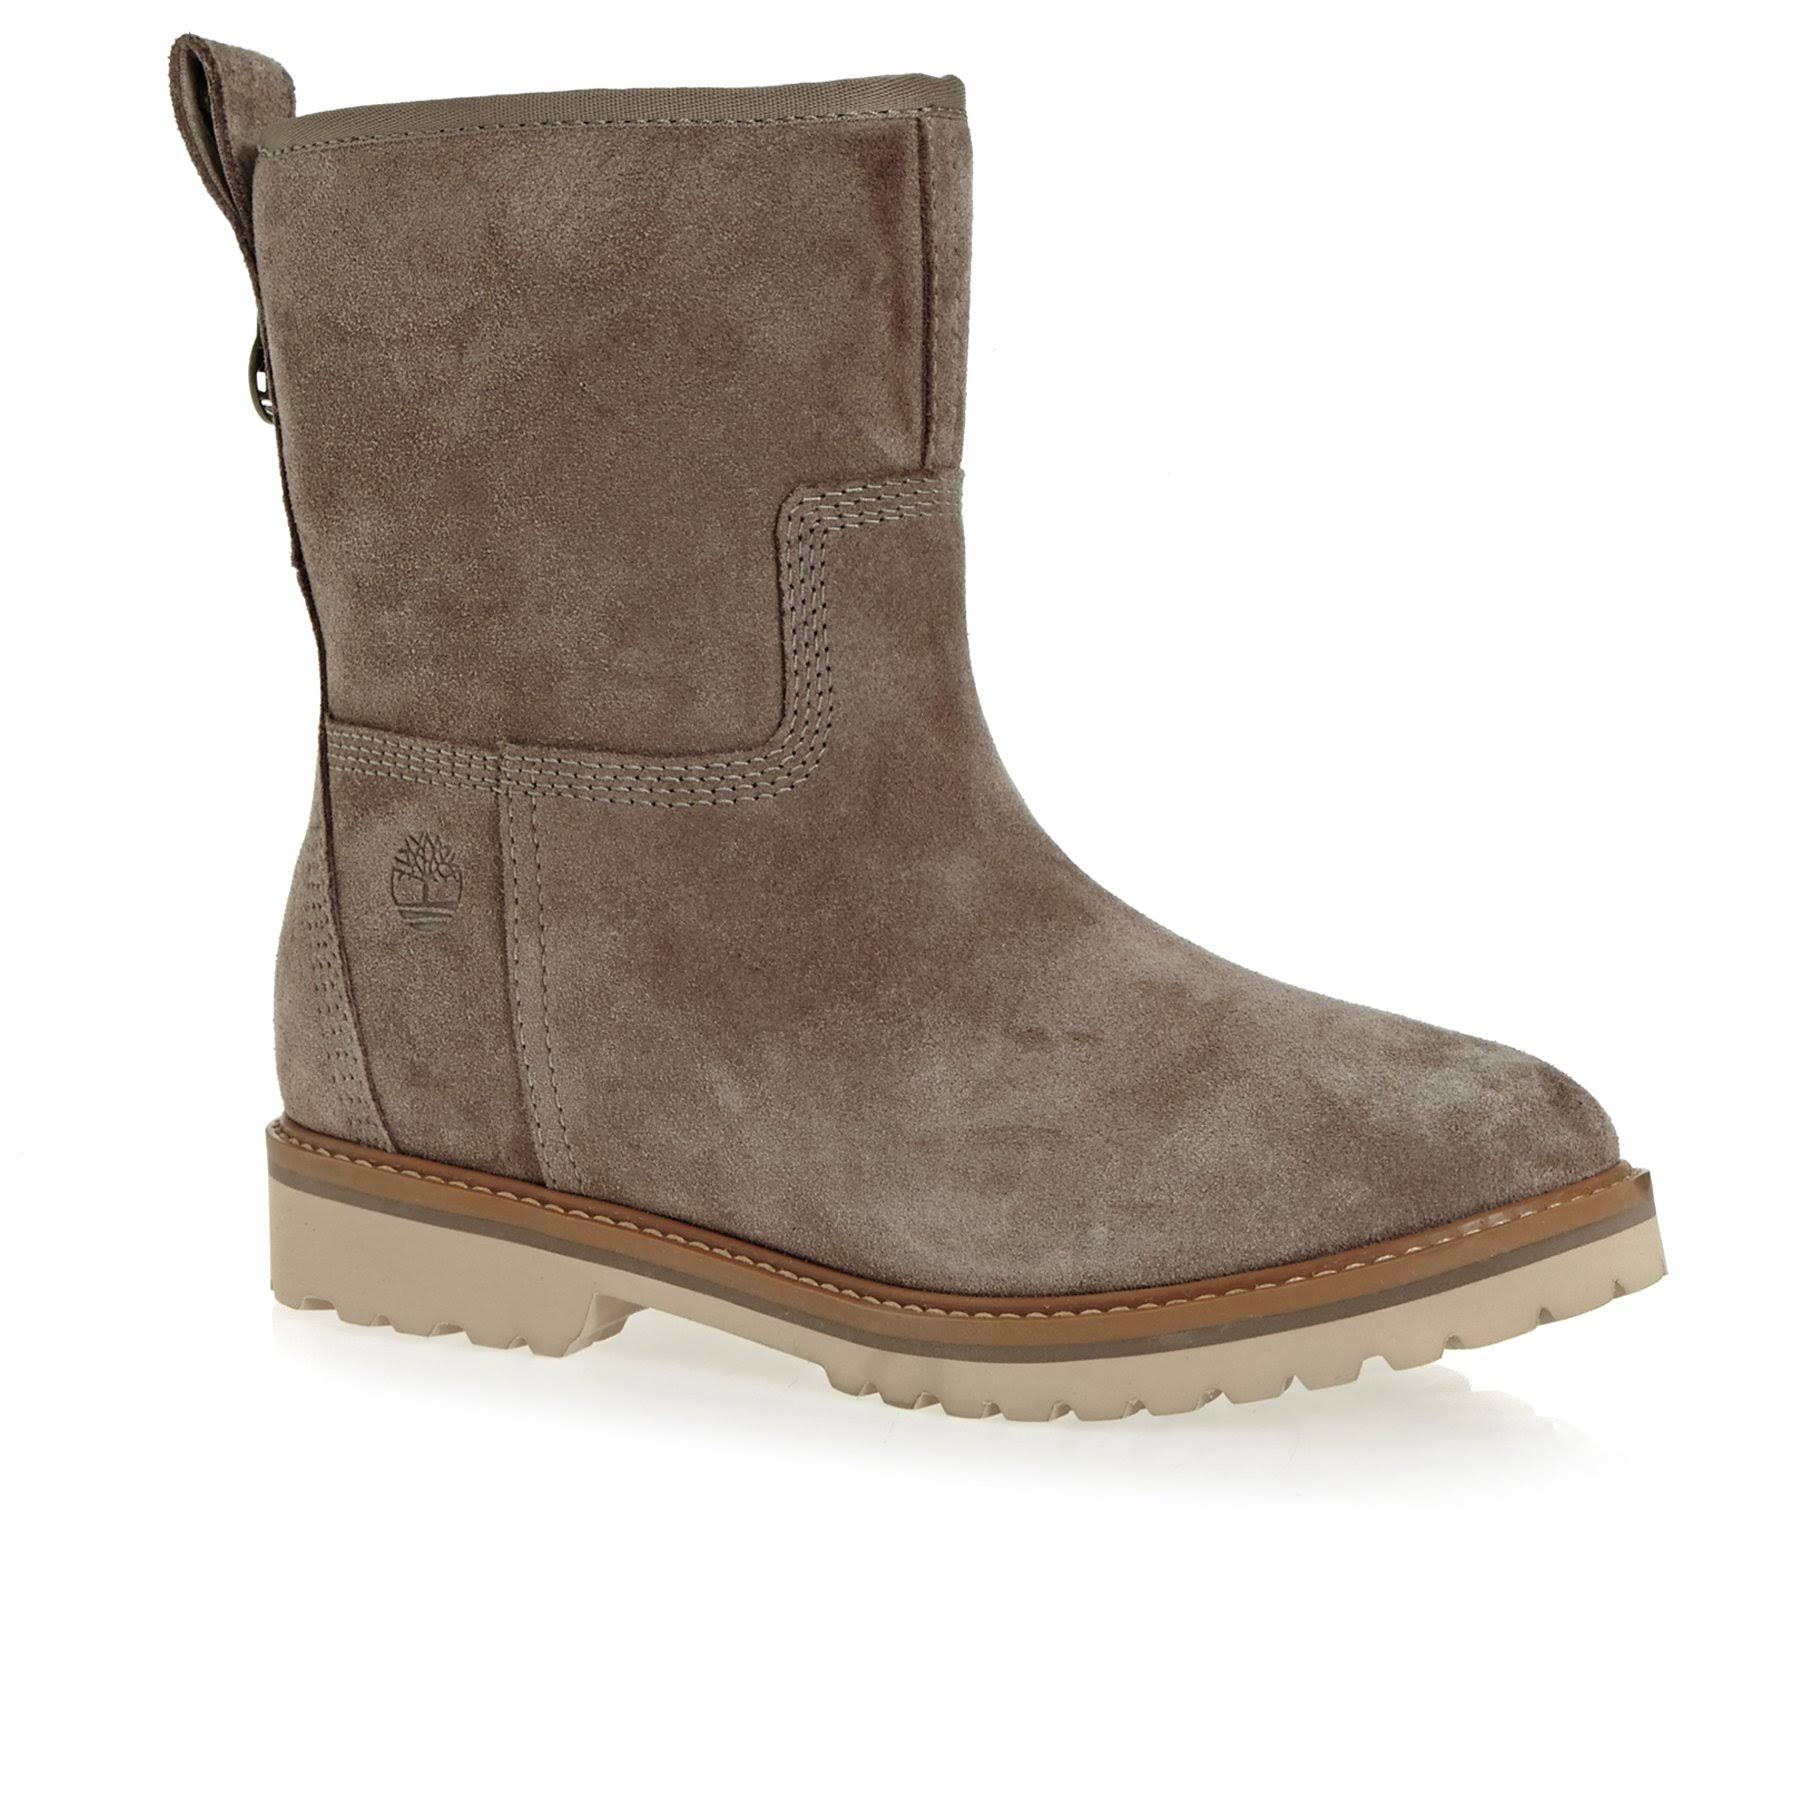 De Taupe Becerro Gris Timberland Impermeable Bota Chamonix Valley dnxAYwq